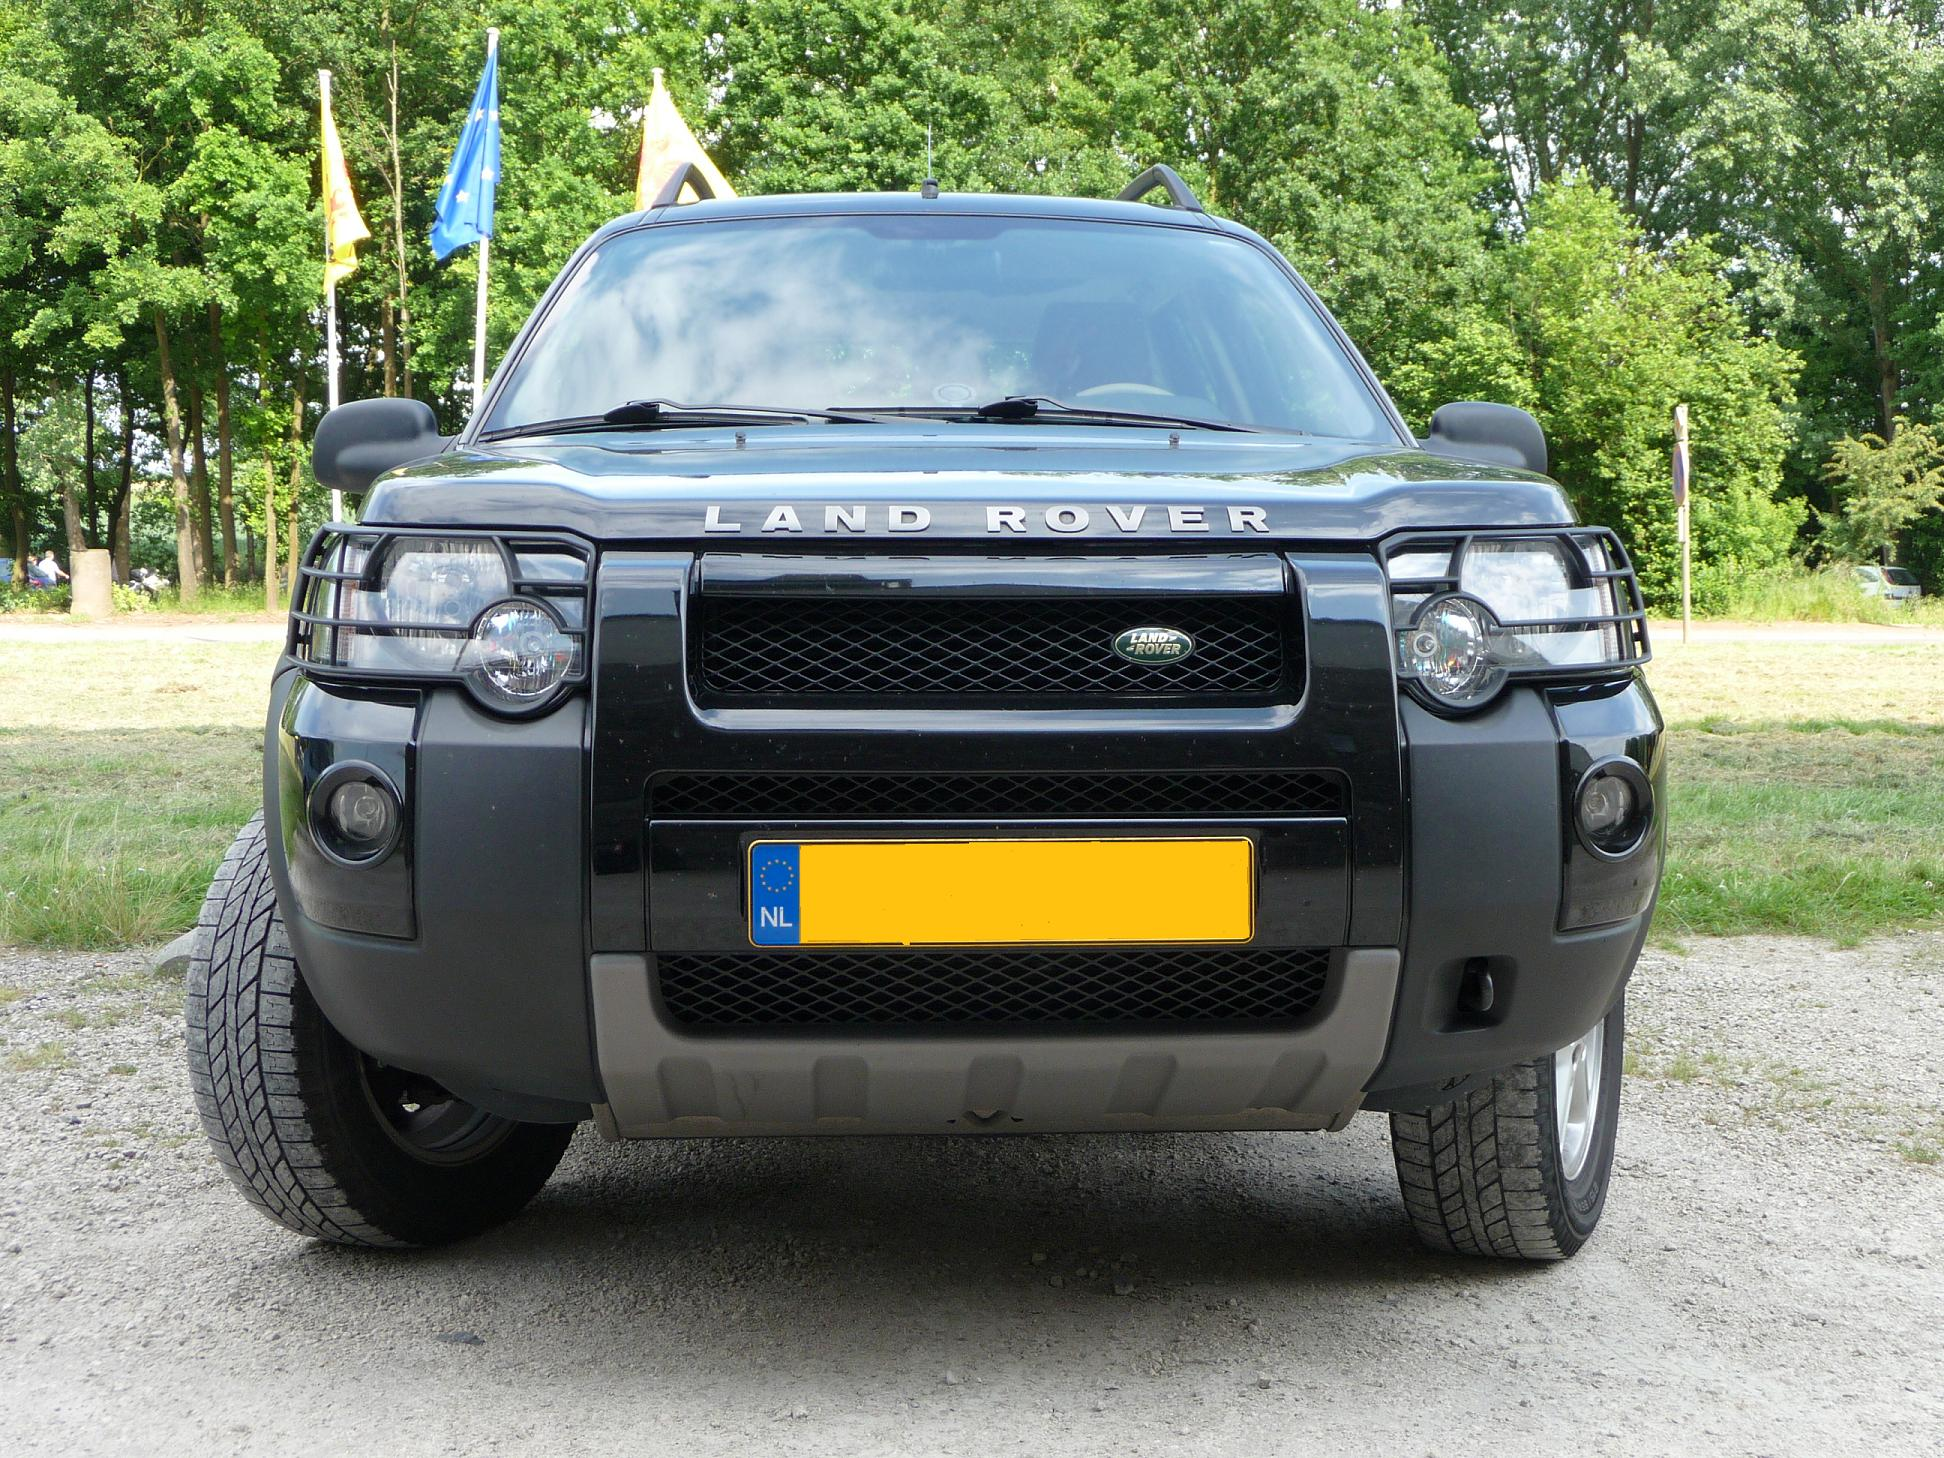 beauty guard landrover land new s ss vanguard grill discovery copy rover brush img auto